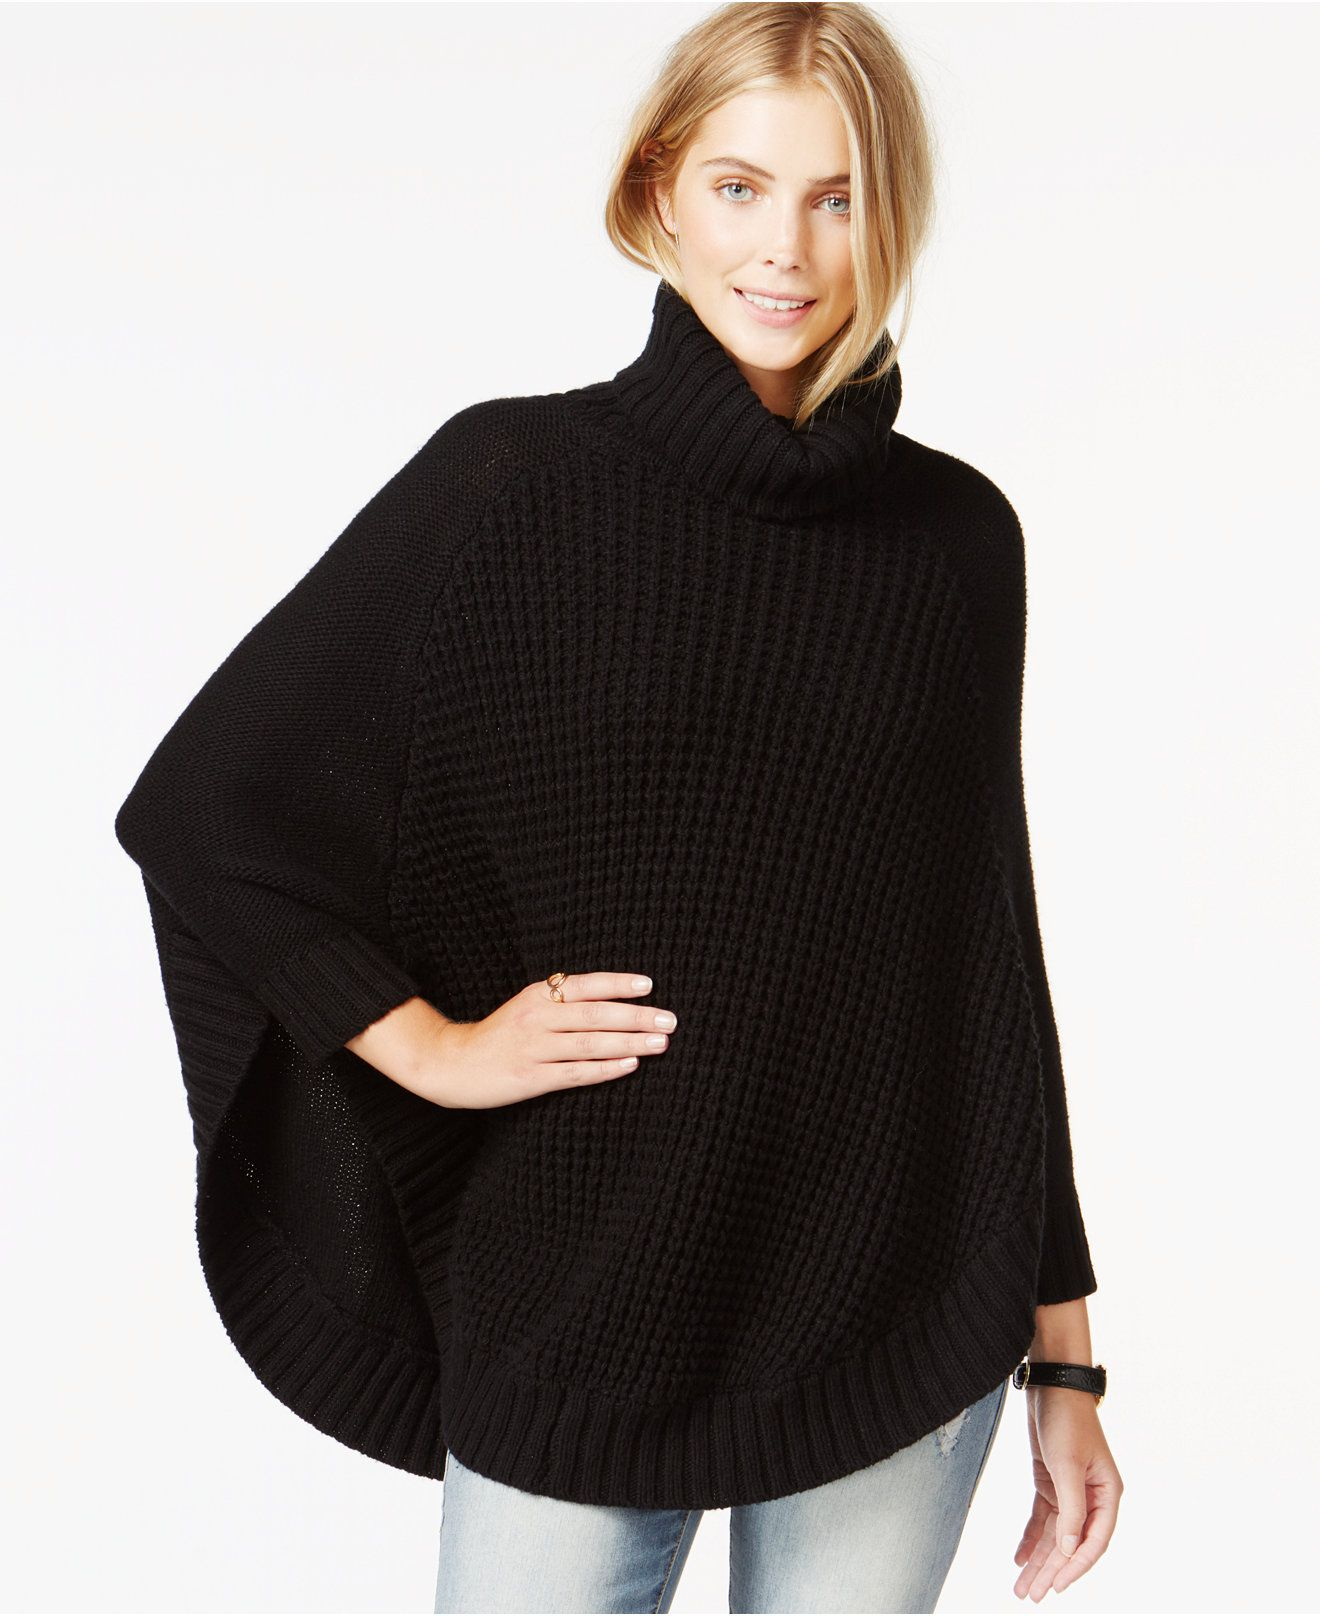 Celebrate sweater season in draped style. Texture meets dark tones to bring you this stand-out seasonal must-have. Pair this poncho with your favorite skinnies and heels for an ultra-chic look.